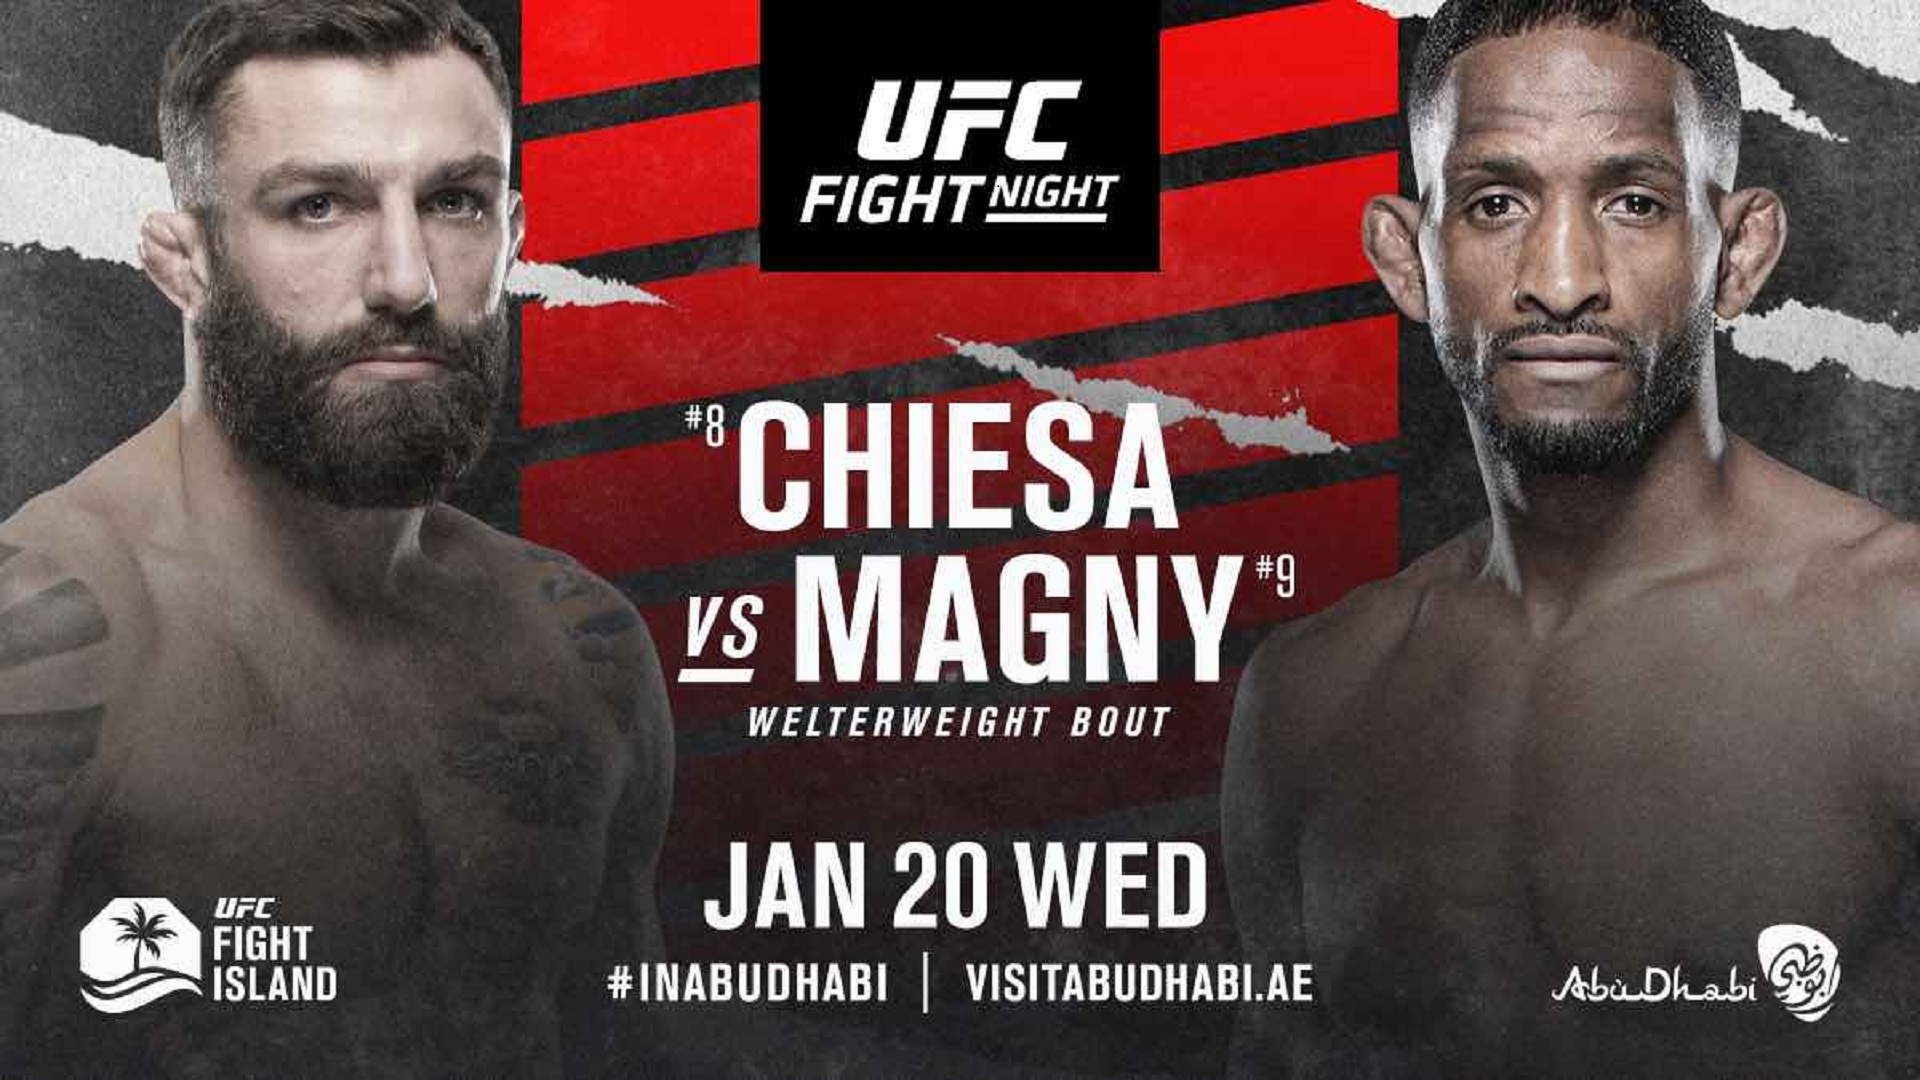 UFC-Fight-Night-Chiesa-Magny-India